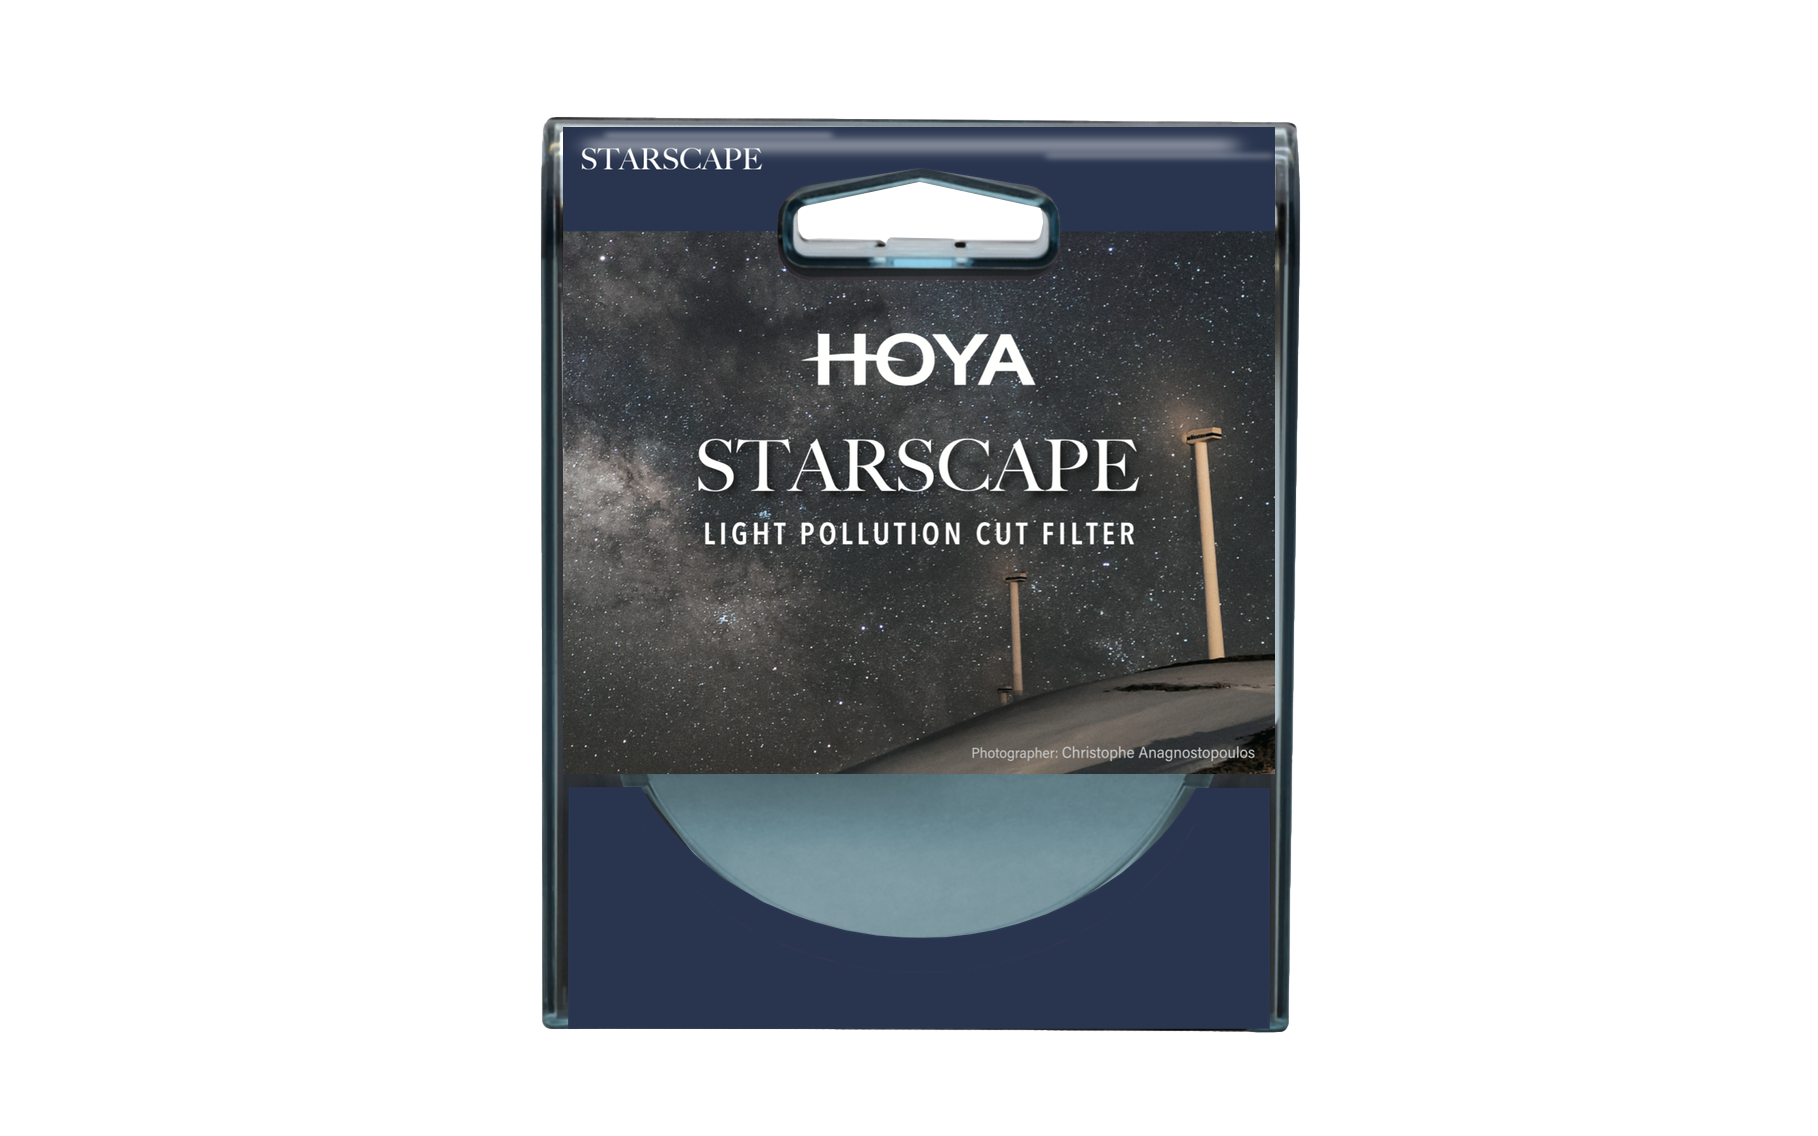 Hoya Starscape : an efficient and affordable light pollution filter